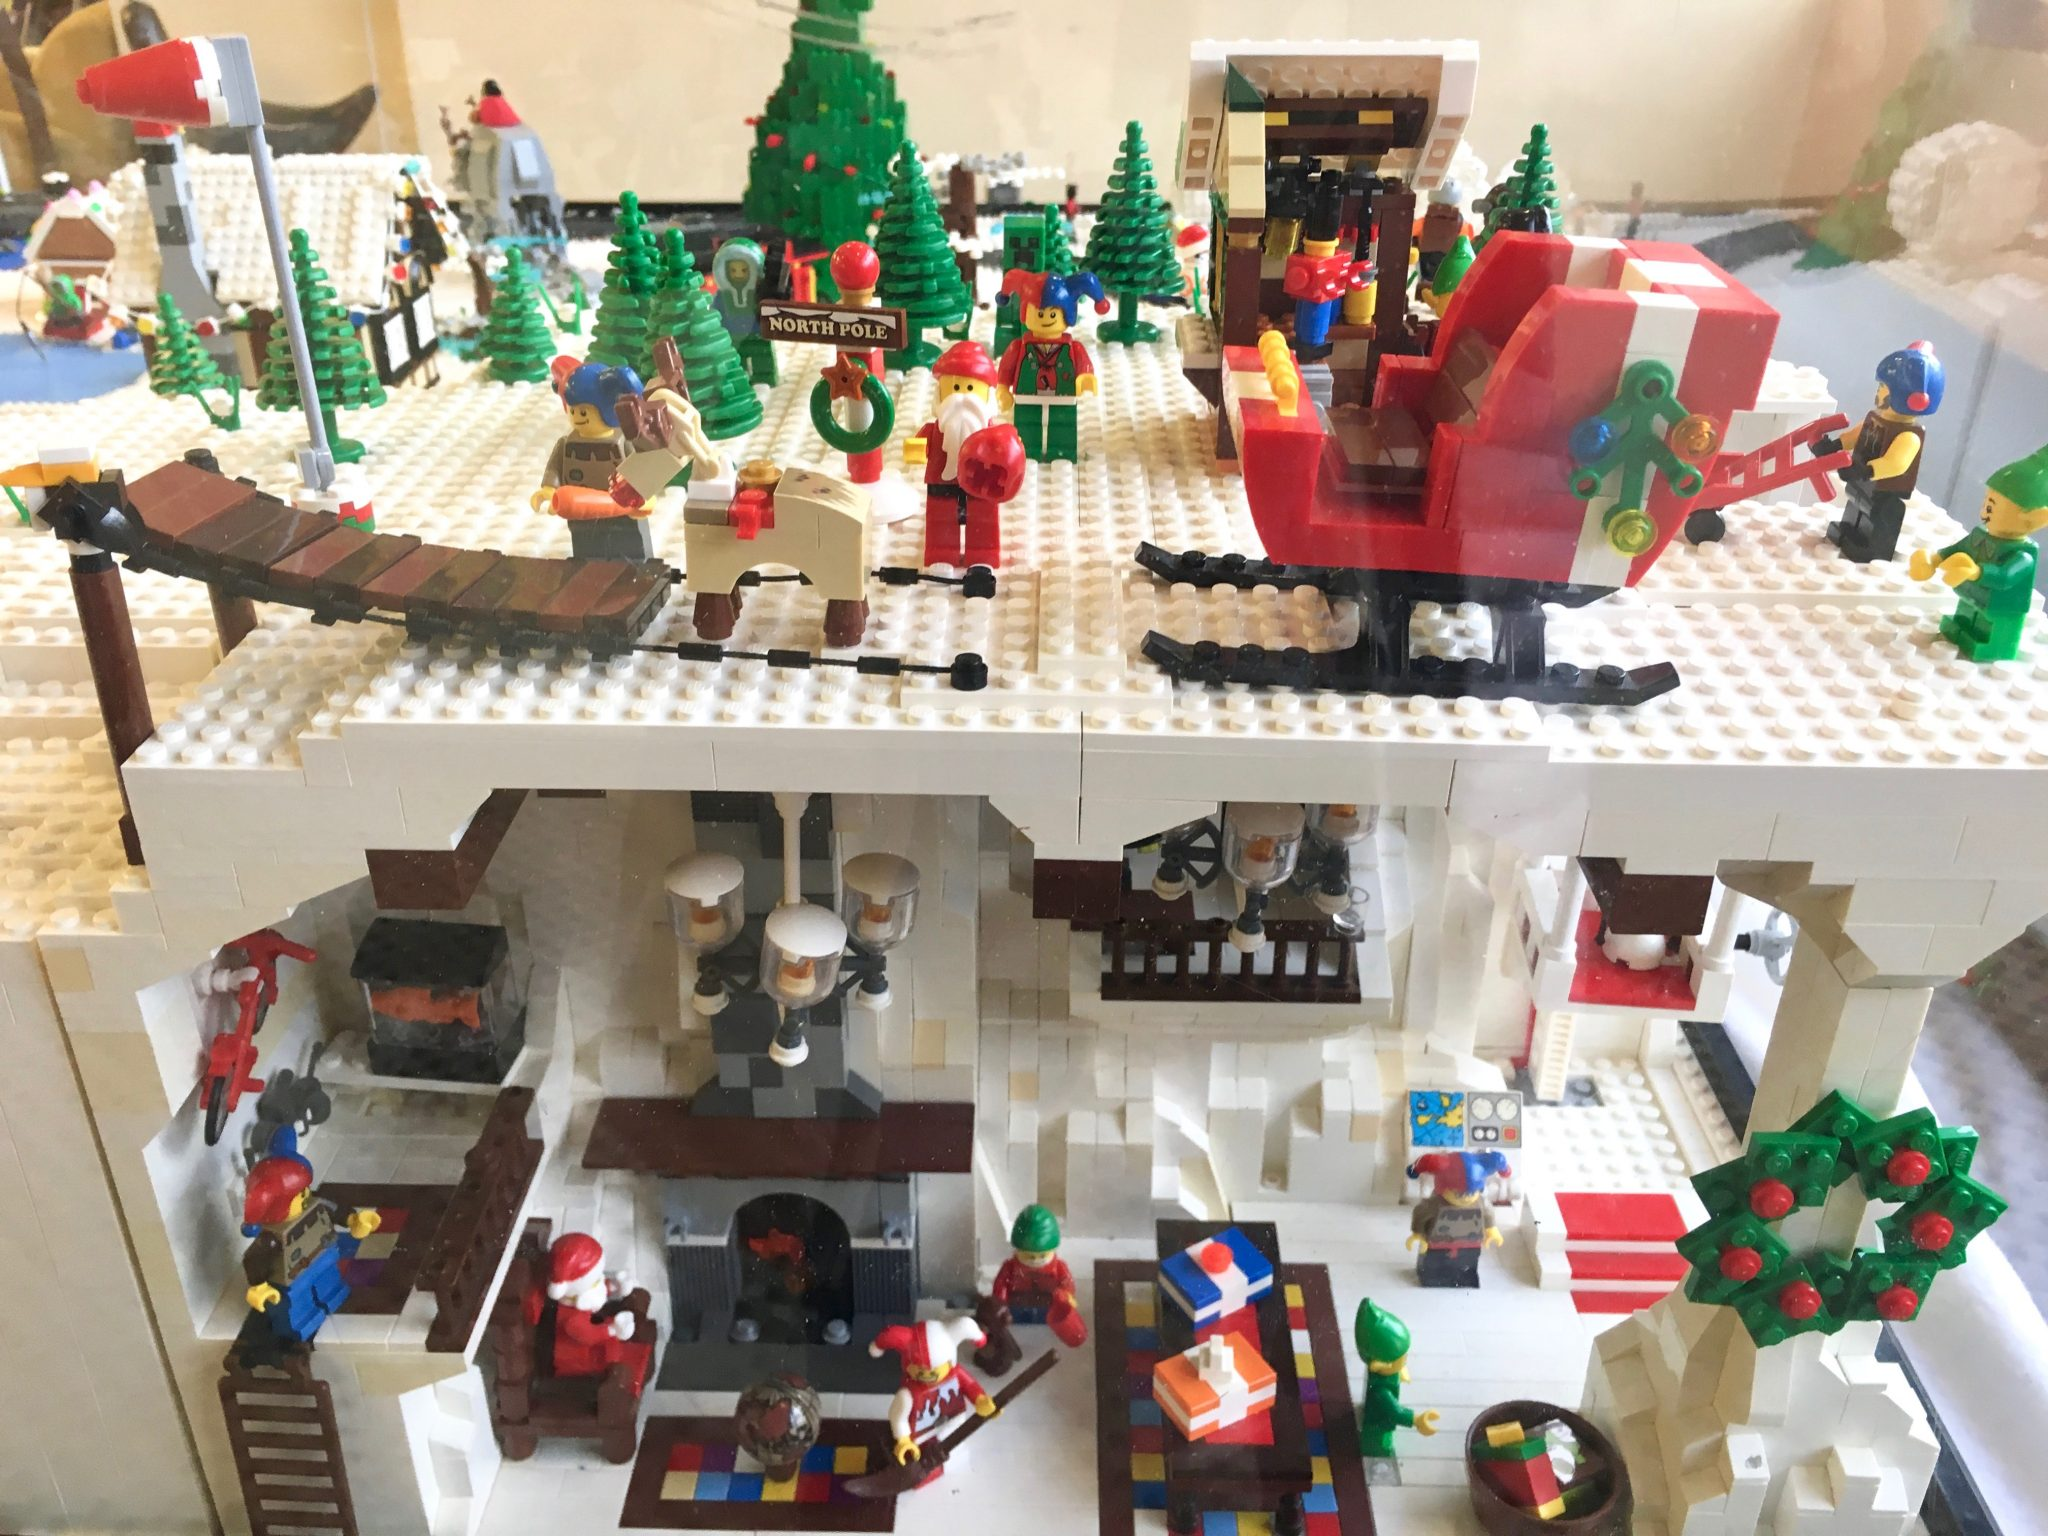 Lego Winter Village, Wellesley